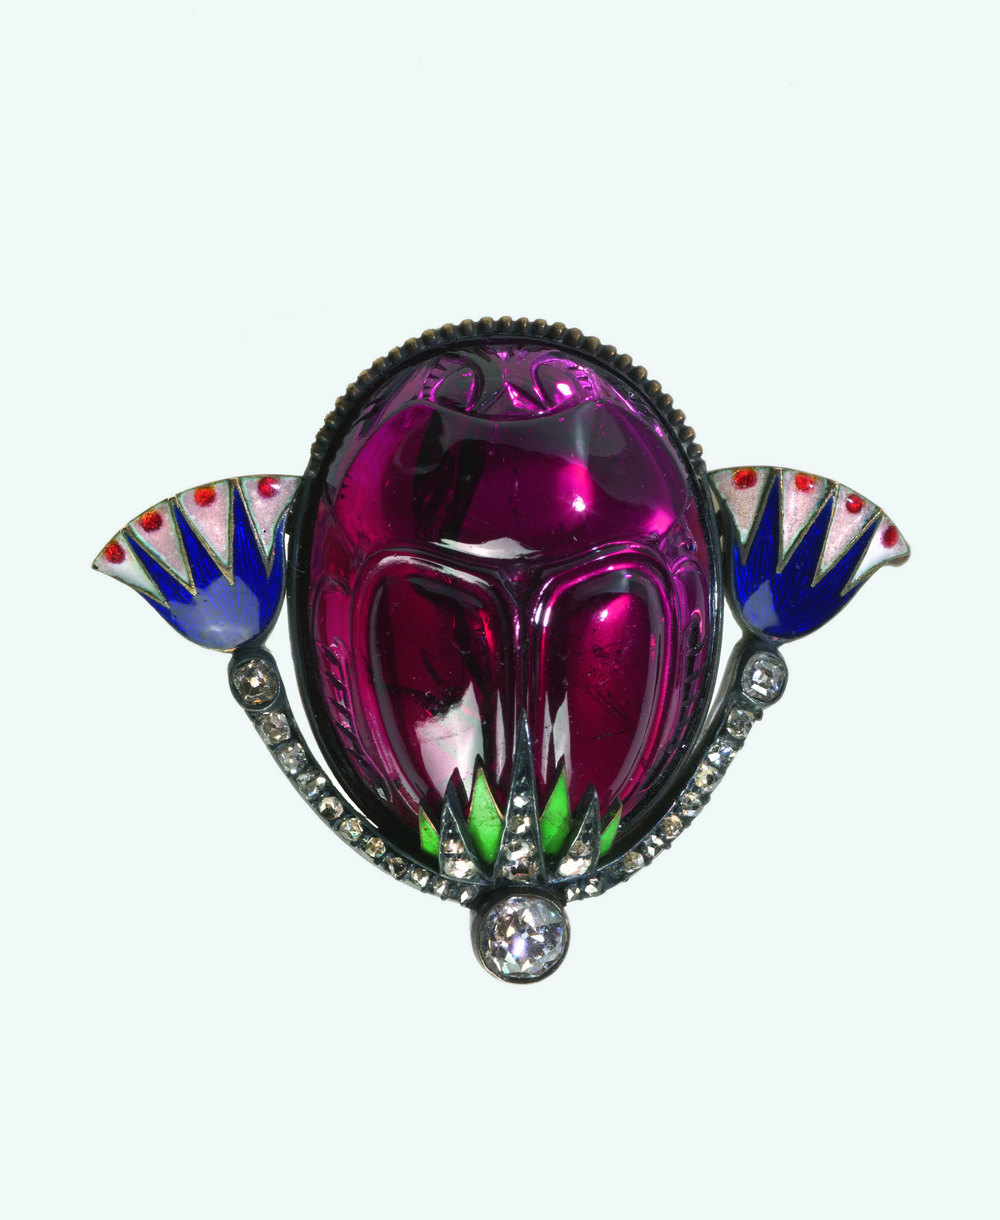 Carl Fabergé (1846–1920), Fabergé workshop, Saint Petersburg, Carl Fabergé (work master). Scarab Brooch, about 1900. Garnet, gold, diamonds, rubies, enamel, silver. 2.8 x 3.8 x 1.9 cm. Virginia Museum of Fine Arts, Bequest of Lillian Thomas Pratt. Also featured in Faberge, Jeweller to the Czars last year at the Montreal Museum of Fine Arts. (Photo courtesy The Montreal Museum of Fine Arts)